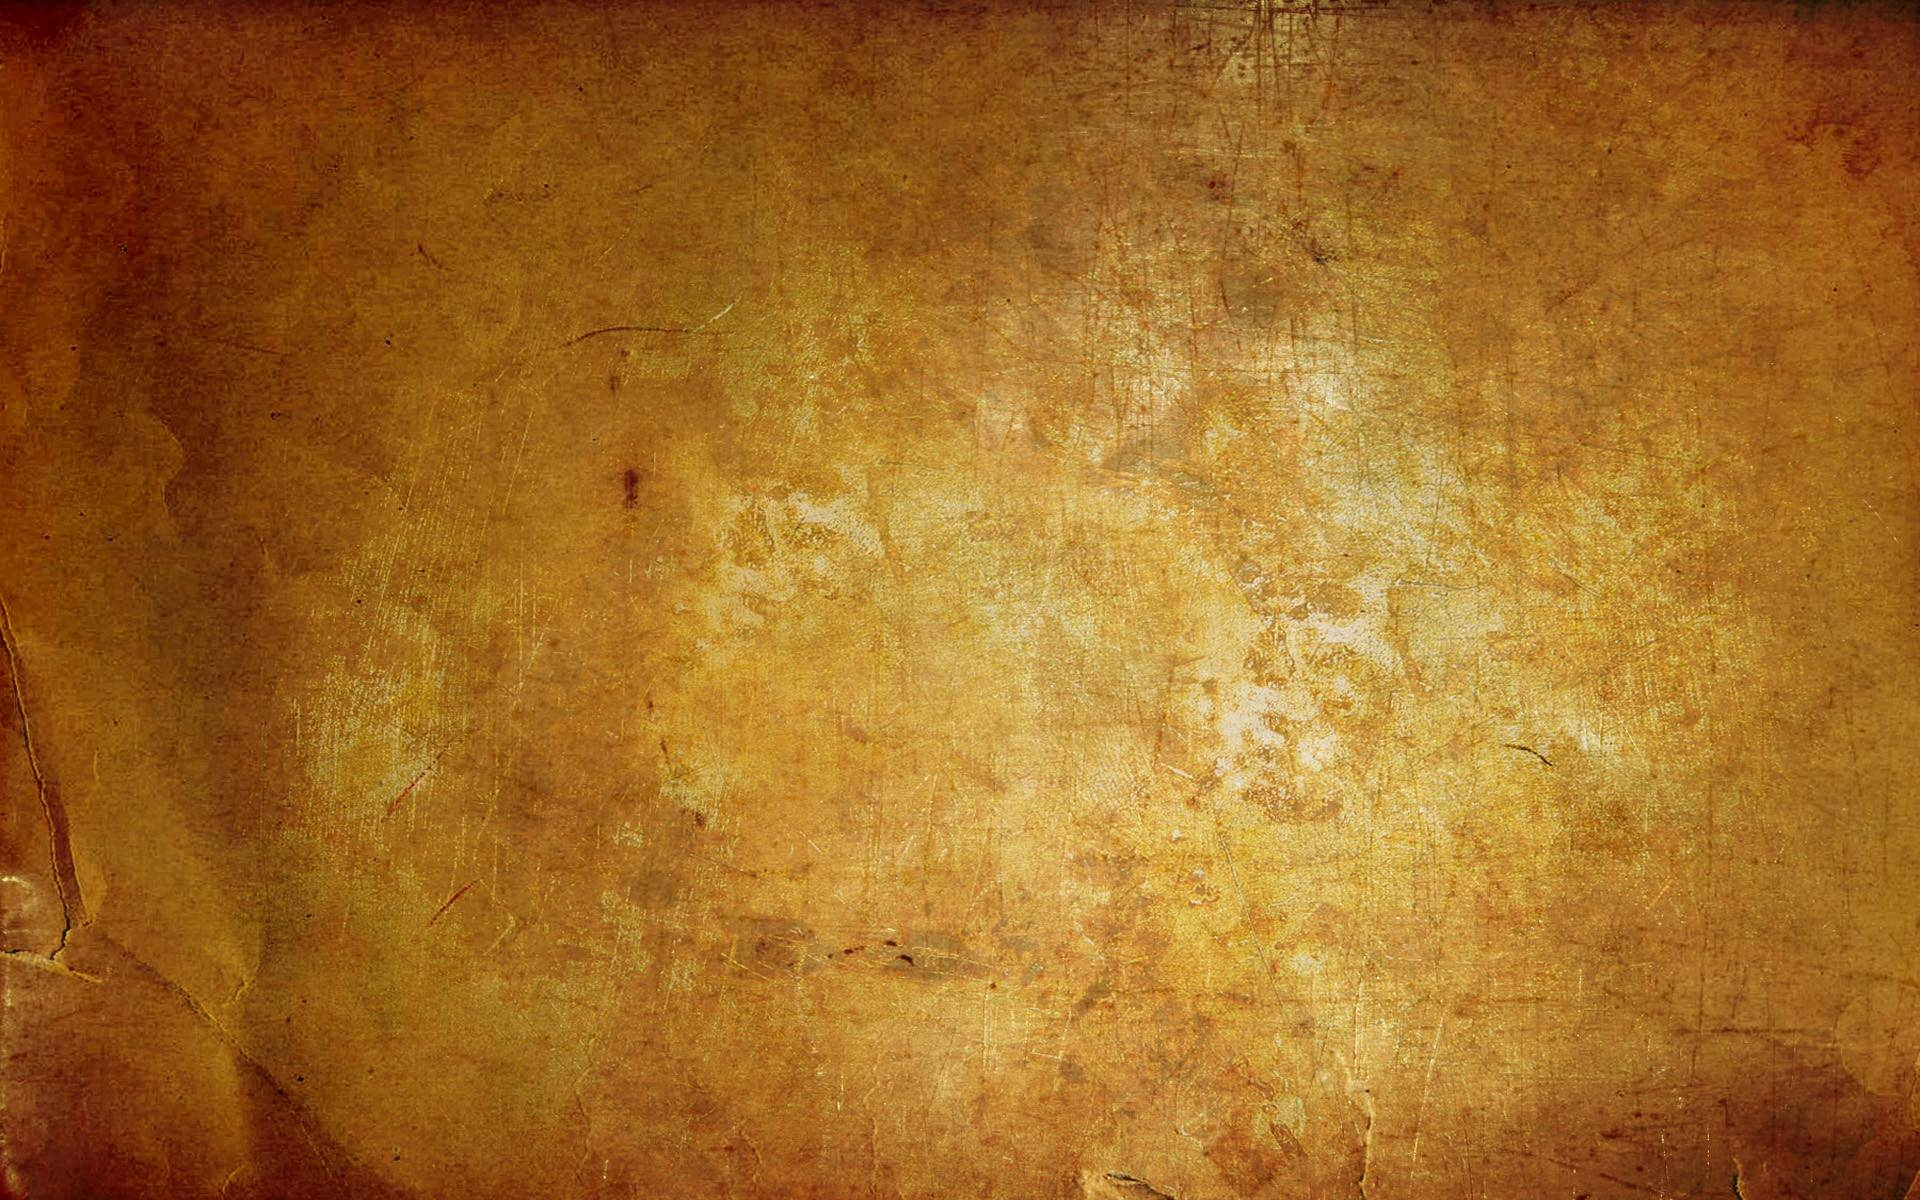 gold background photoshop - photo #25